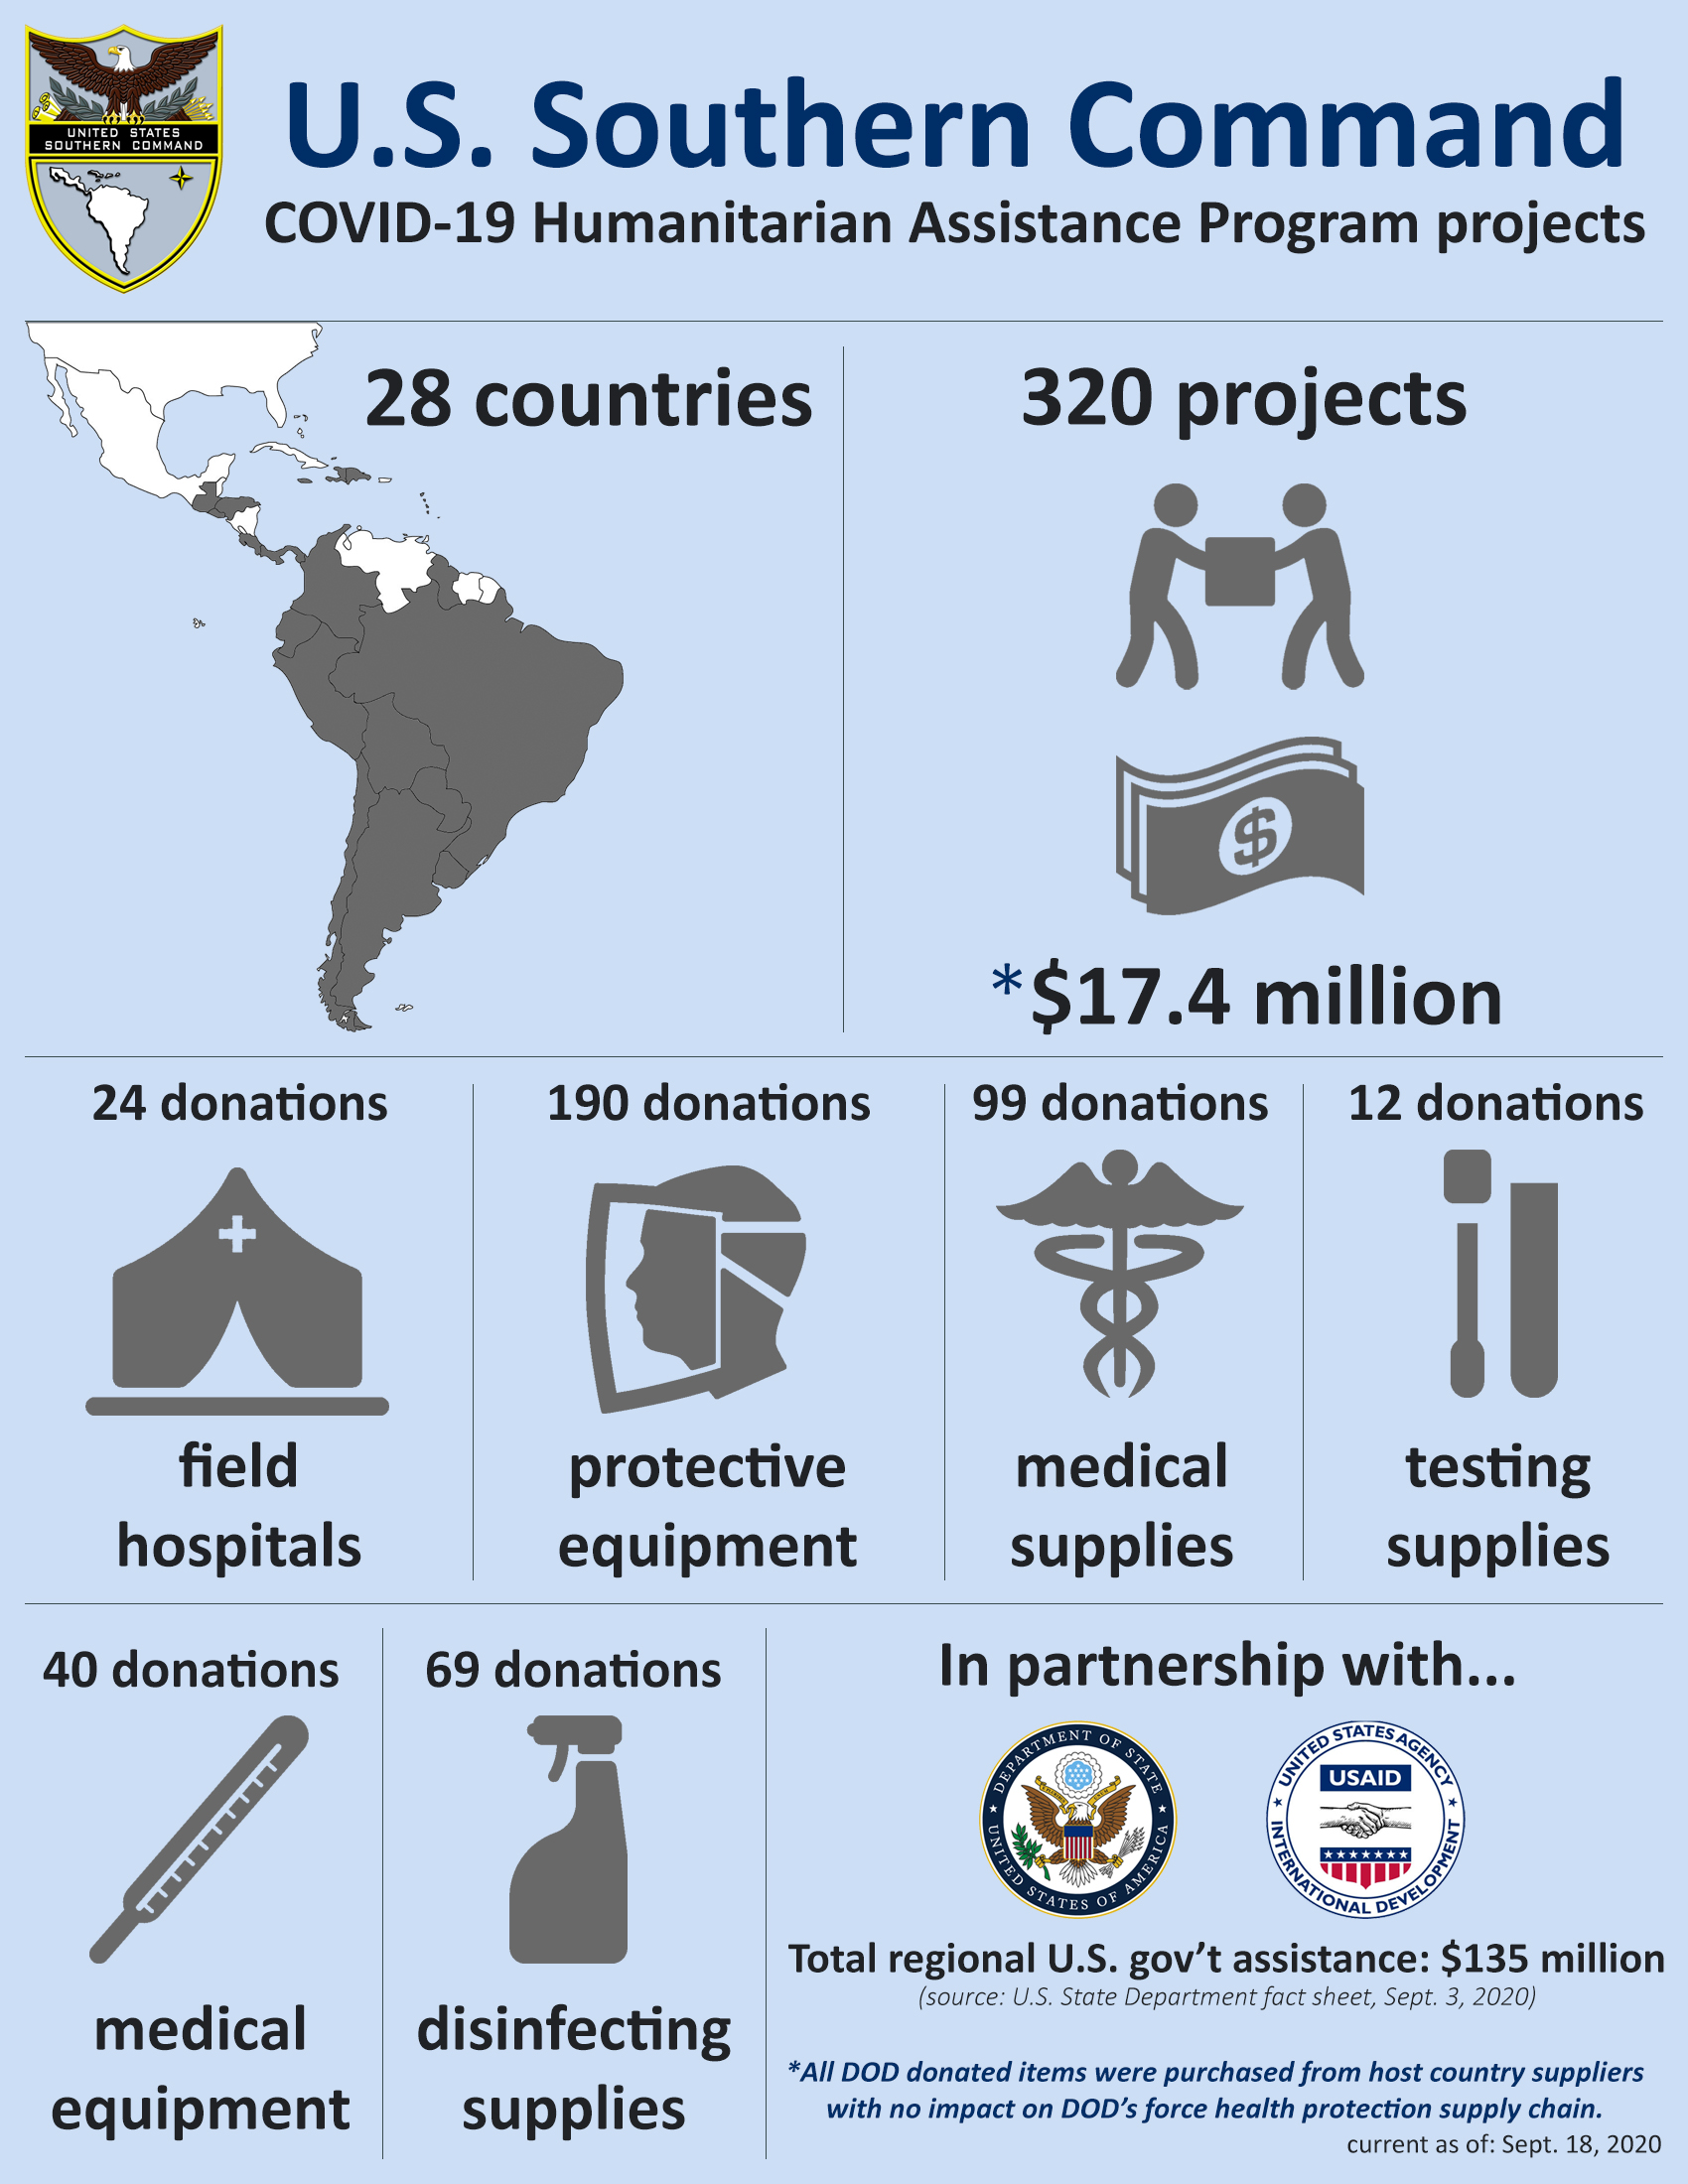 Graphic depicting U.S. Southern Command COVID-19 Humanitarian Assistance Program projects. Embedded text: U.S. Southern Command: COVID-19 Humanitarian Assistance Program projects. 28 Countries. 320 Projects worth an estimated $17.4 million. 24 donations of field hospitals. 190 donations of protective equipment. 99 donations of medical supplies. 12 donations of testing supplies. 40 donations of medical equipment. 69 donations of disinfecting supplies. In partnership with the U.S. State Department and USAID. Total U.S. Government assistance: $135 million (source: U.S. State Department fact sheet, Sept. 18, 2020.) Note: All DOD donated items were purchased from host country suppliers with no impact on DOD's force health protection supply chain. (Graphic produced by Jose Ruiz, U.S. Southern Command Public Affairs)